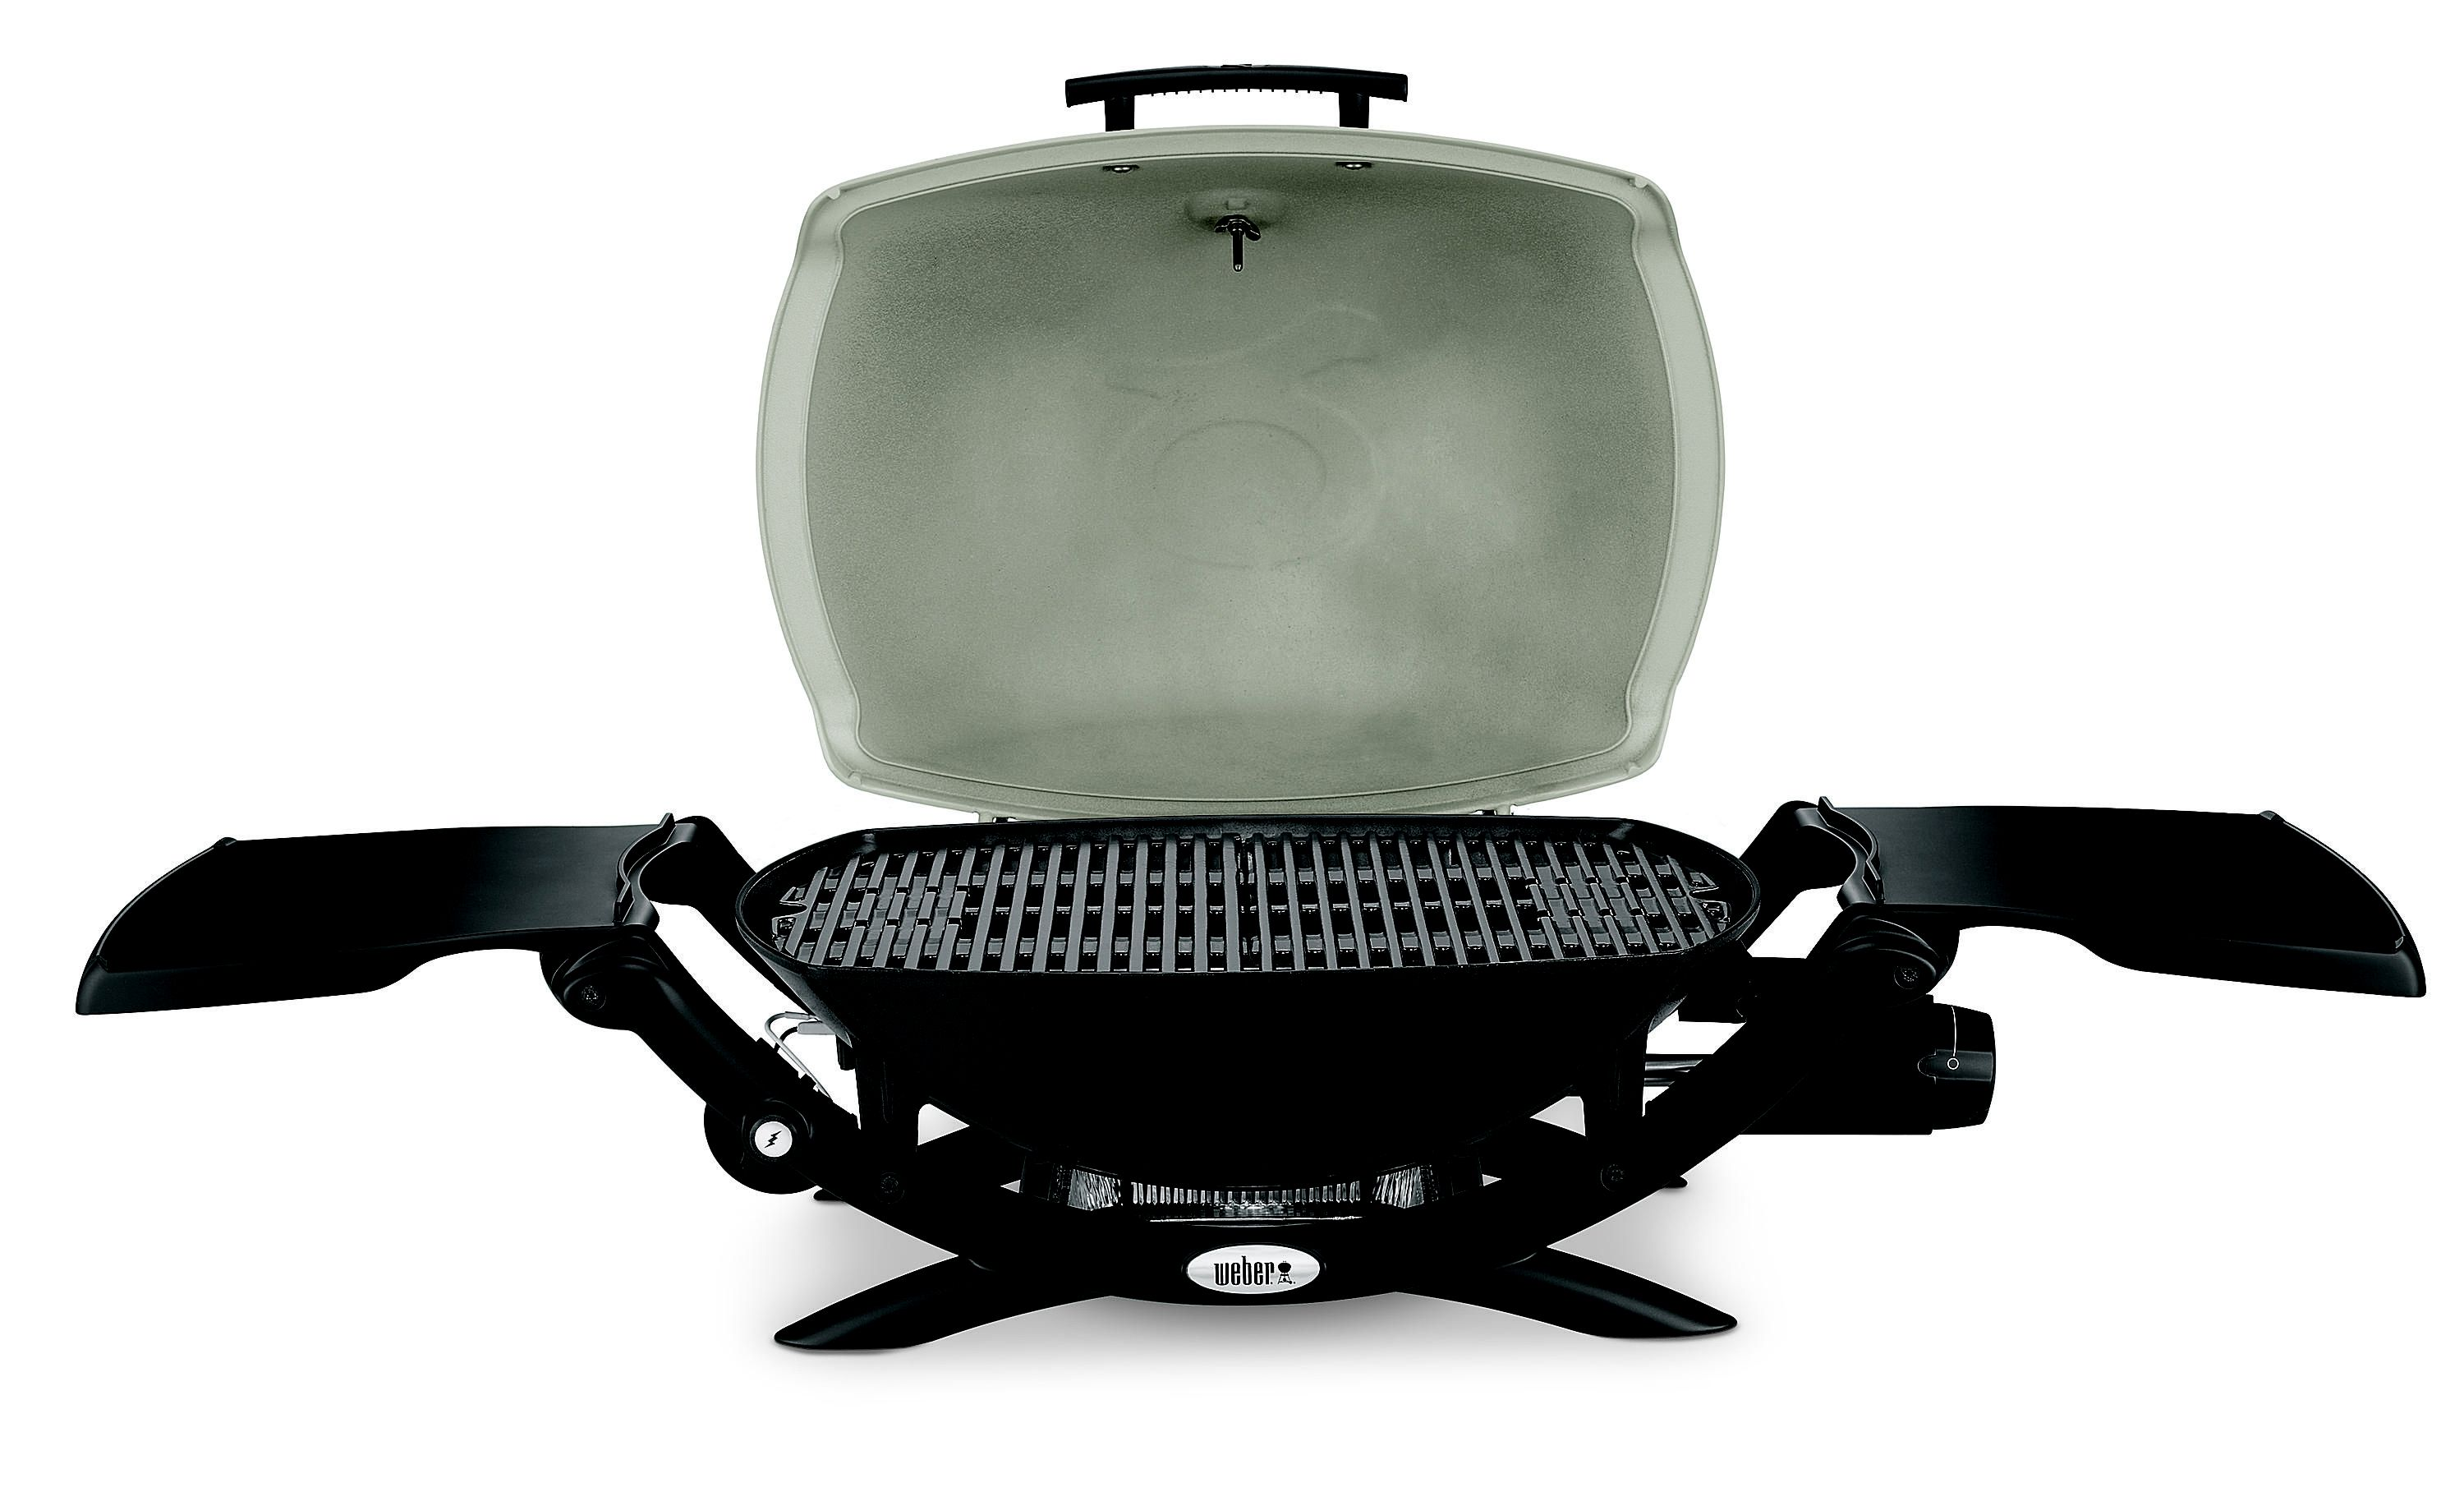 weber q 2200 portable gas grill review. Black Bedroom Furniture Sets. Home Design Ideas